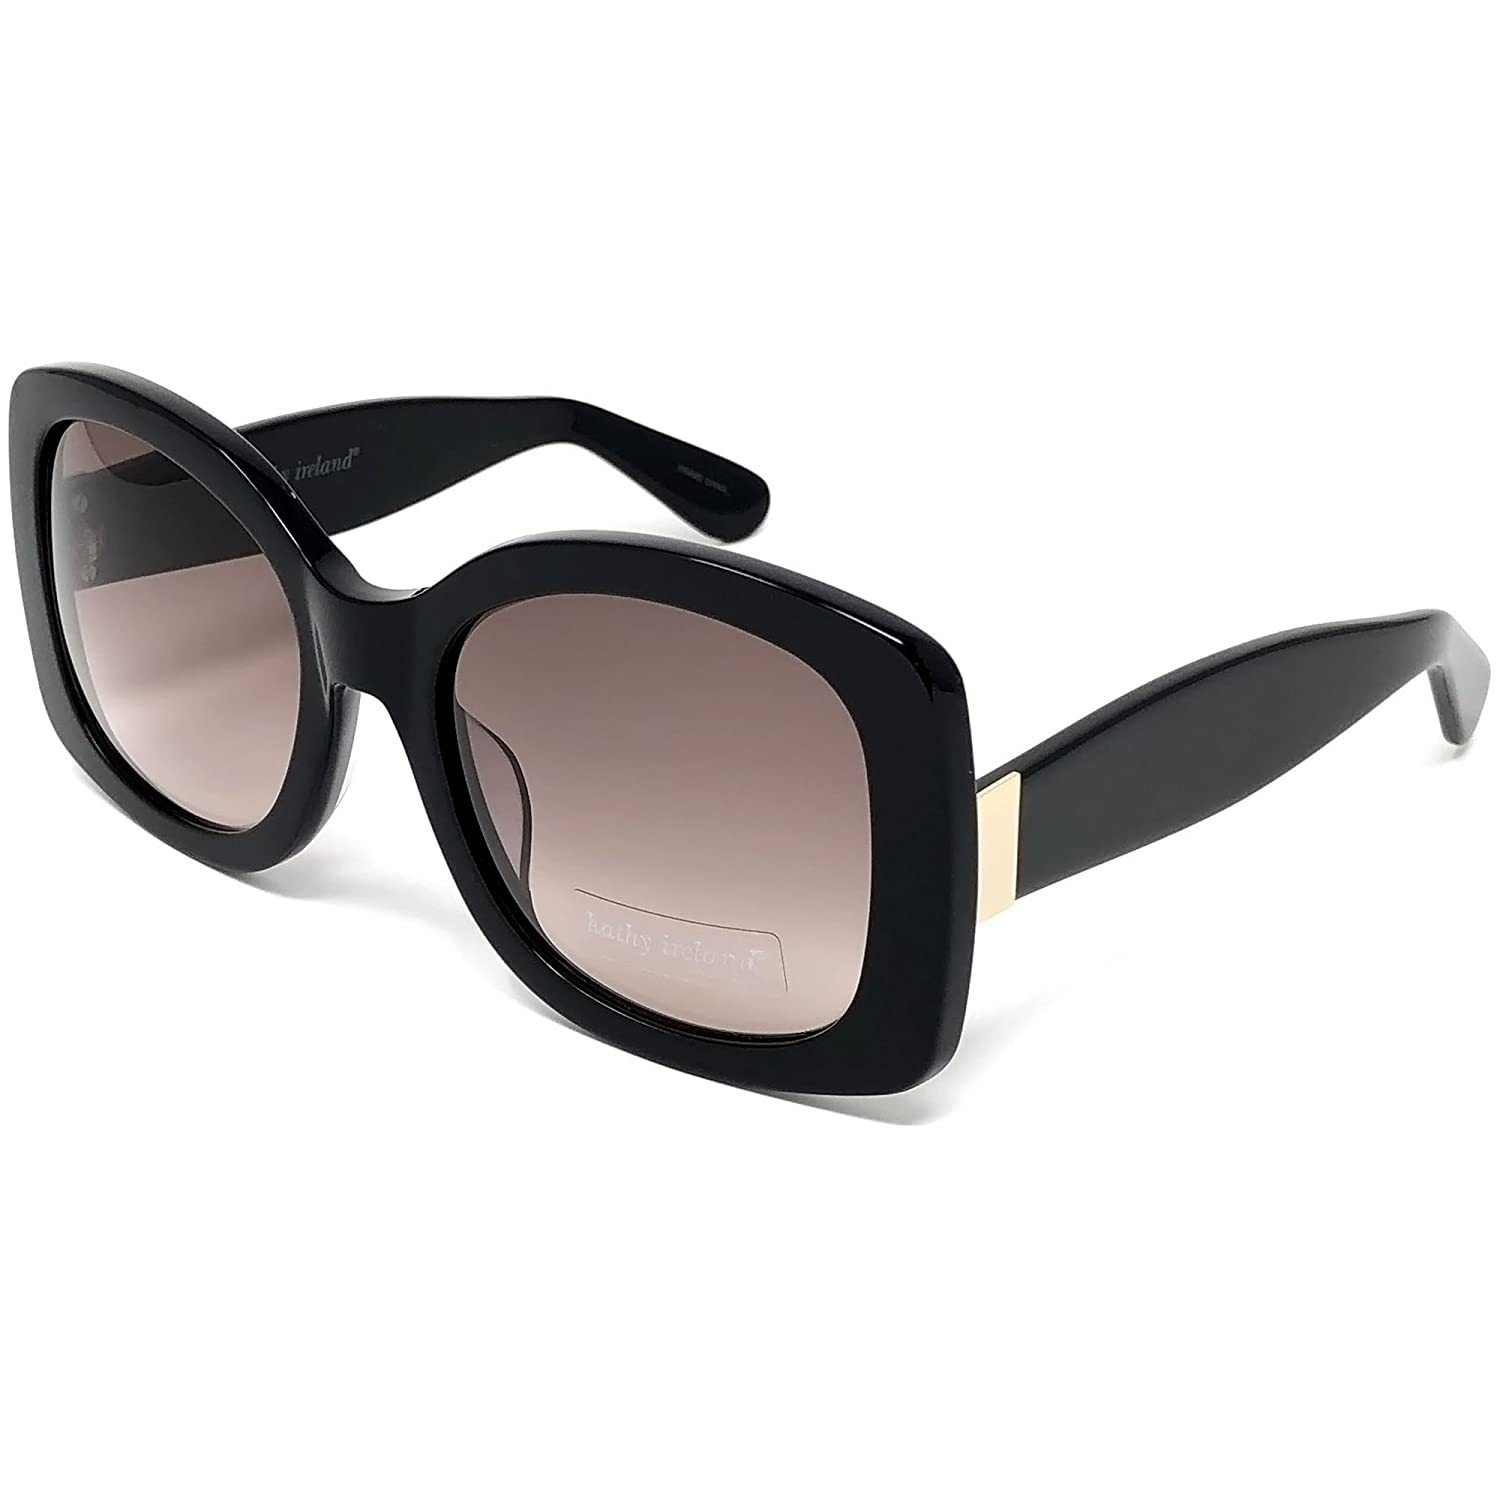 a9b58c2c14 Amazon.com  Kathy Ireland Womens Acetate Black Square Sunglasses With UV400  Gradient Smoke Lens  Sports   Outdoors